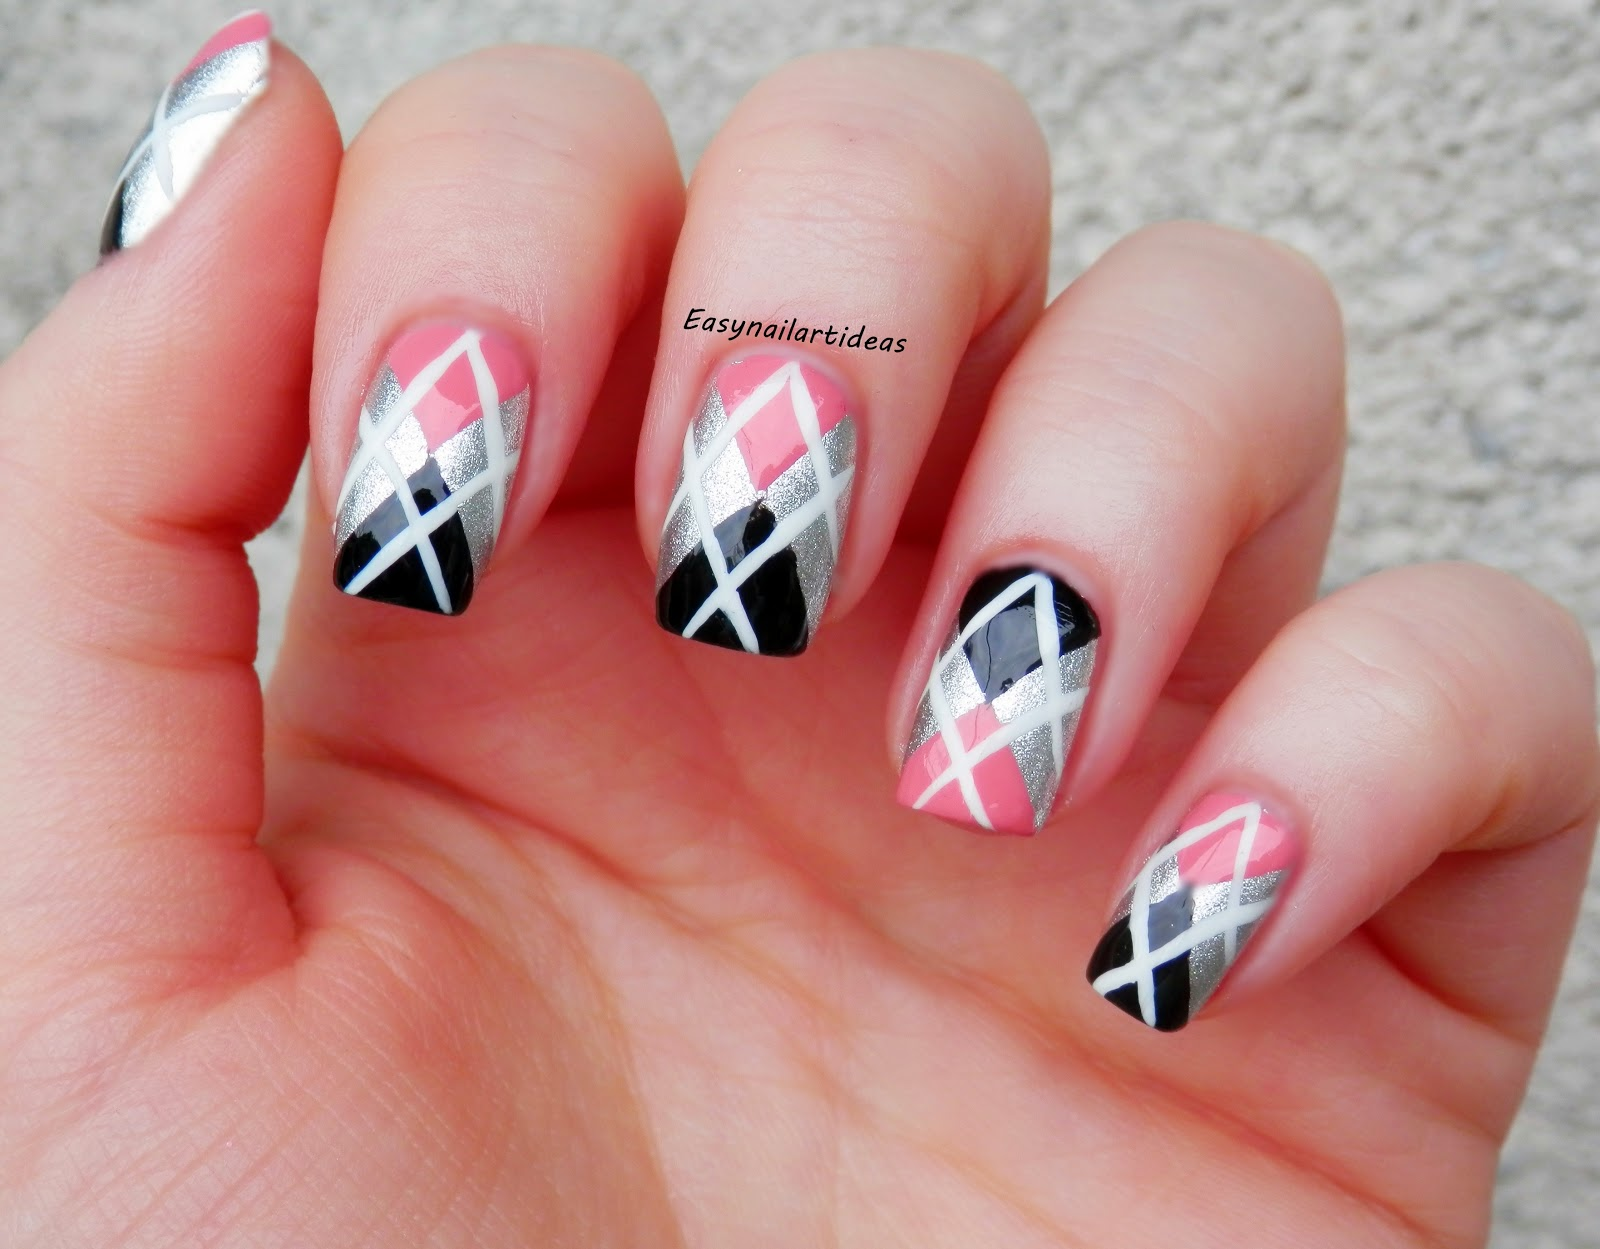 EASY NAIL ART and make-up IDEAS: Back to school nail art tutorials